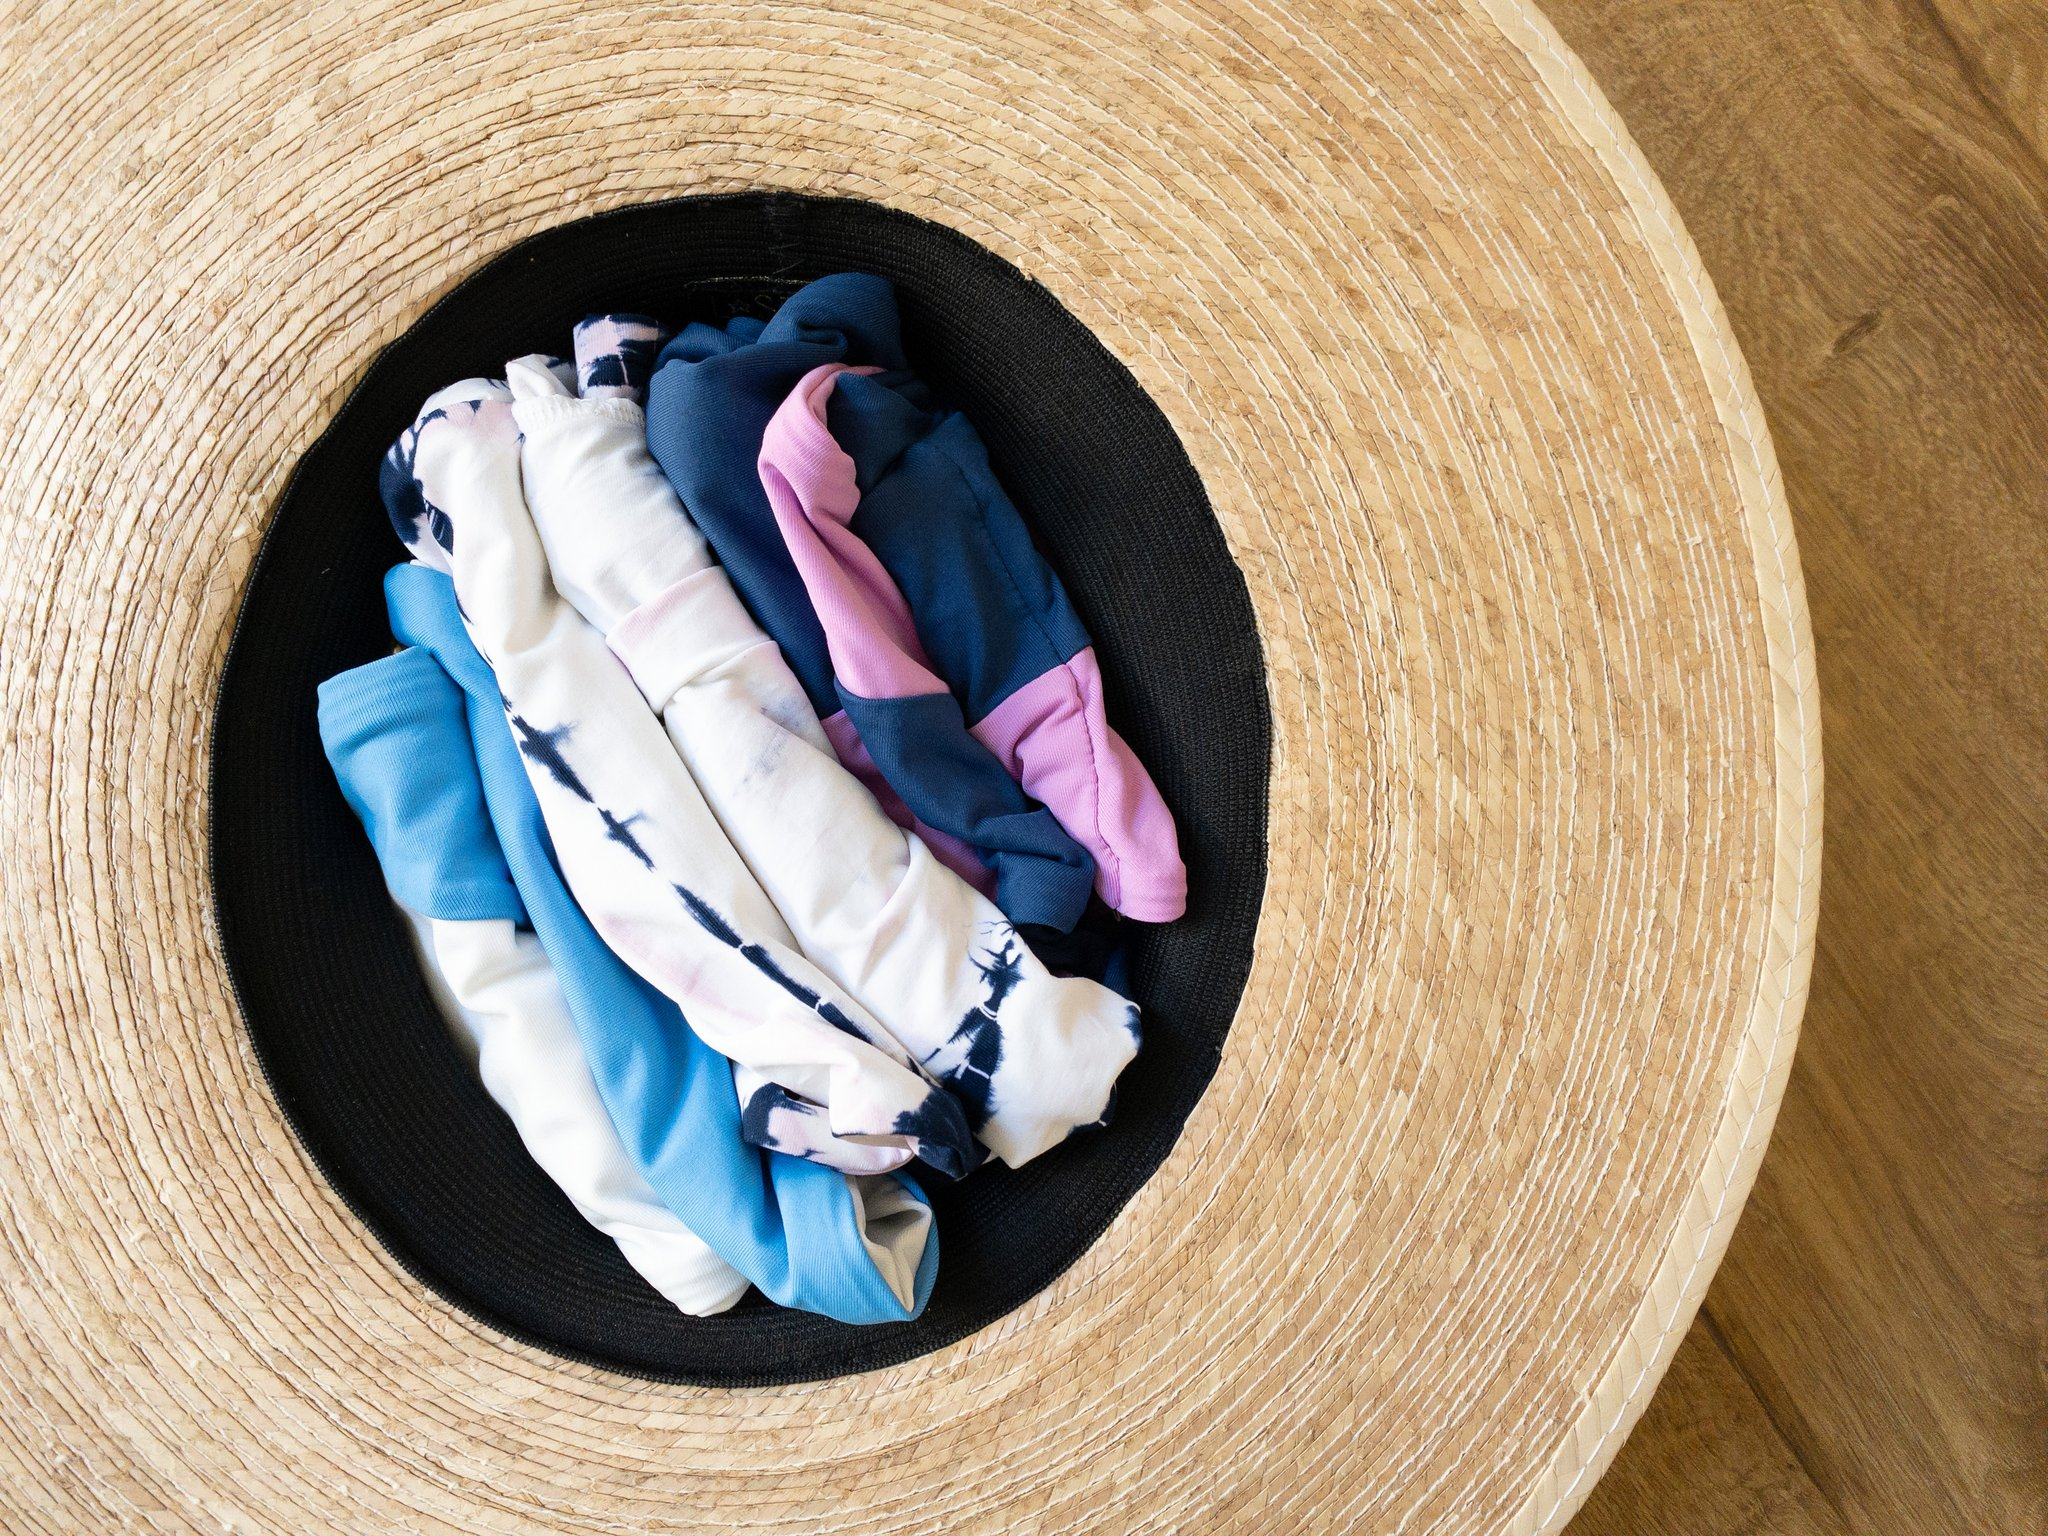 swimsuits folded in a hat